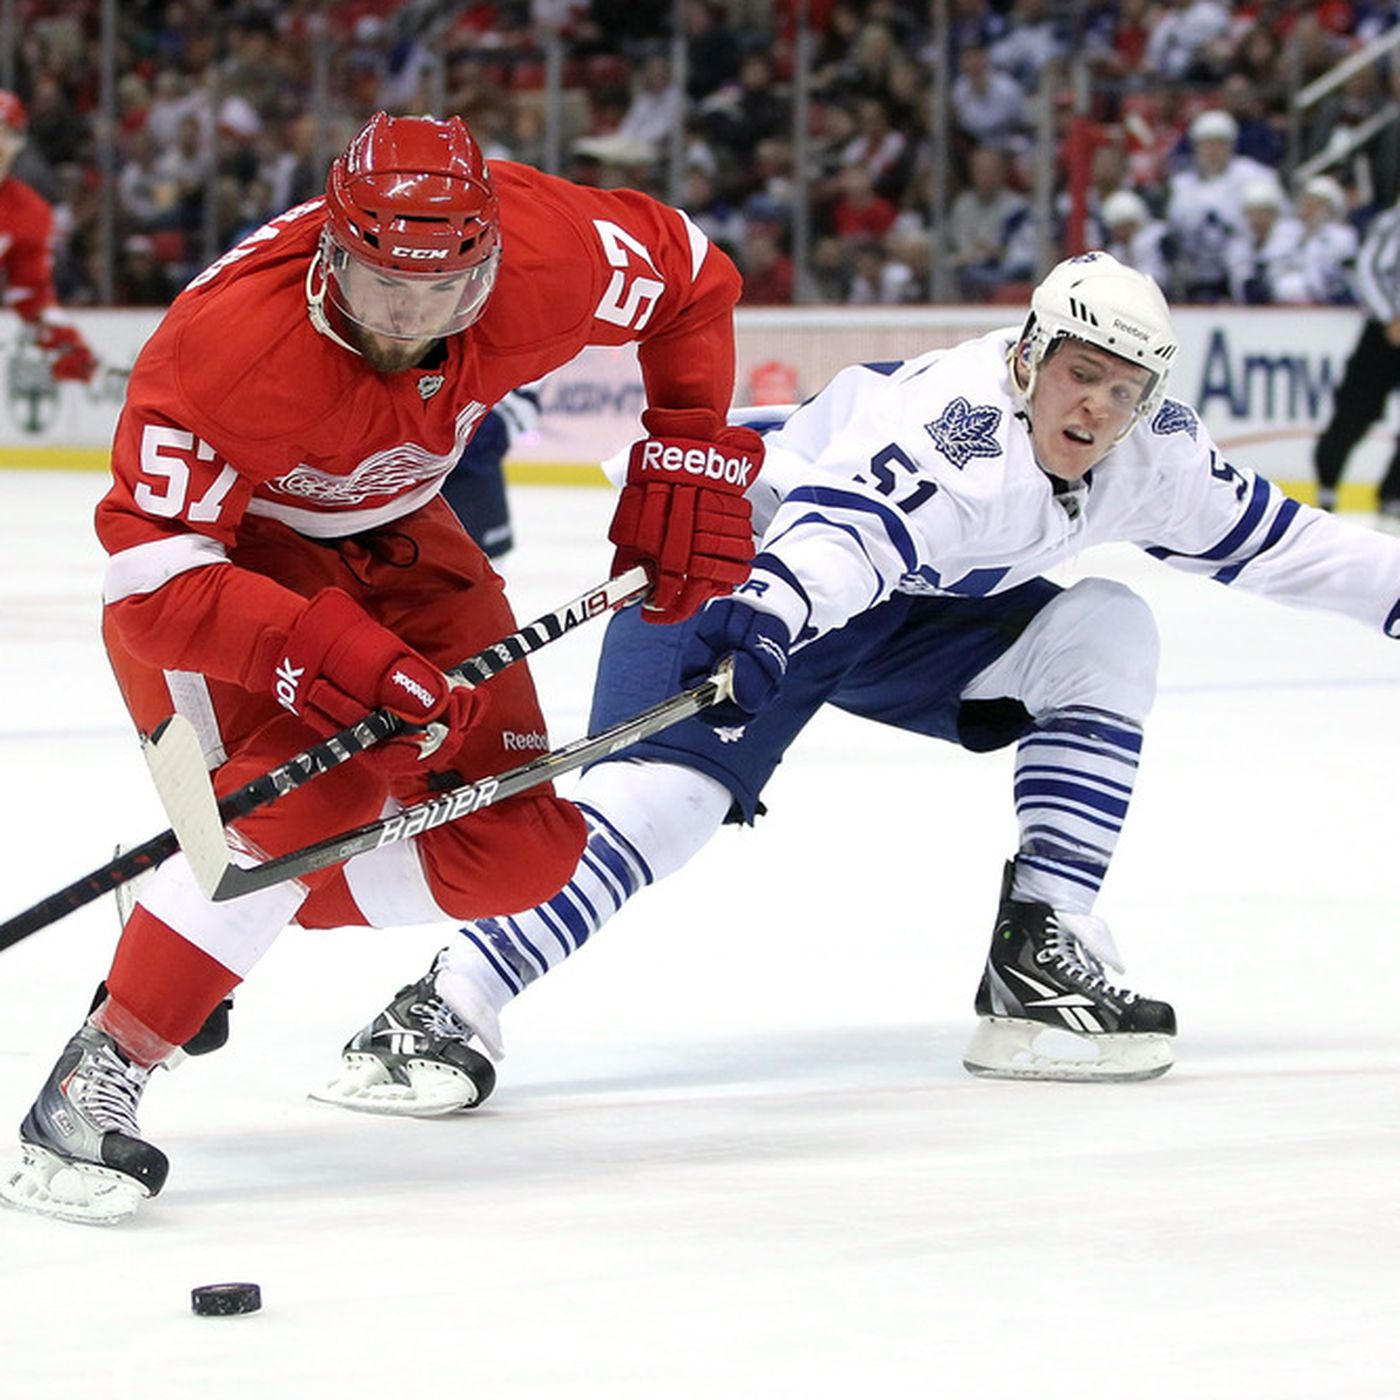 Do The Maple Leafs Defencemen Give Up The Blueline Too Easily